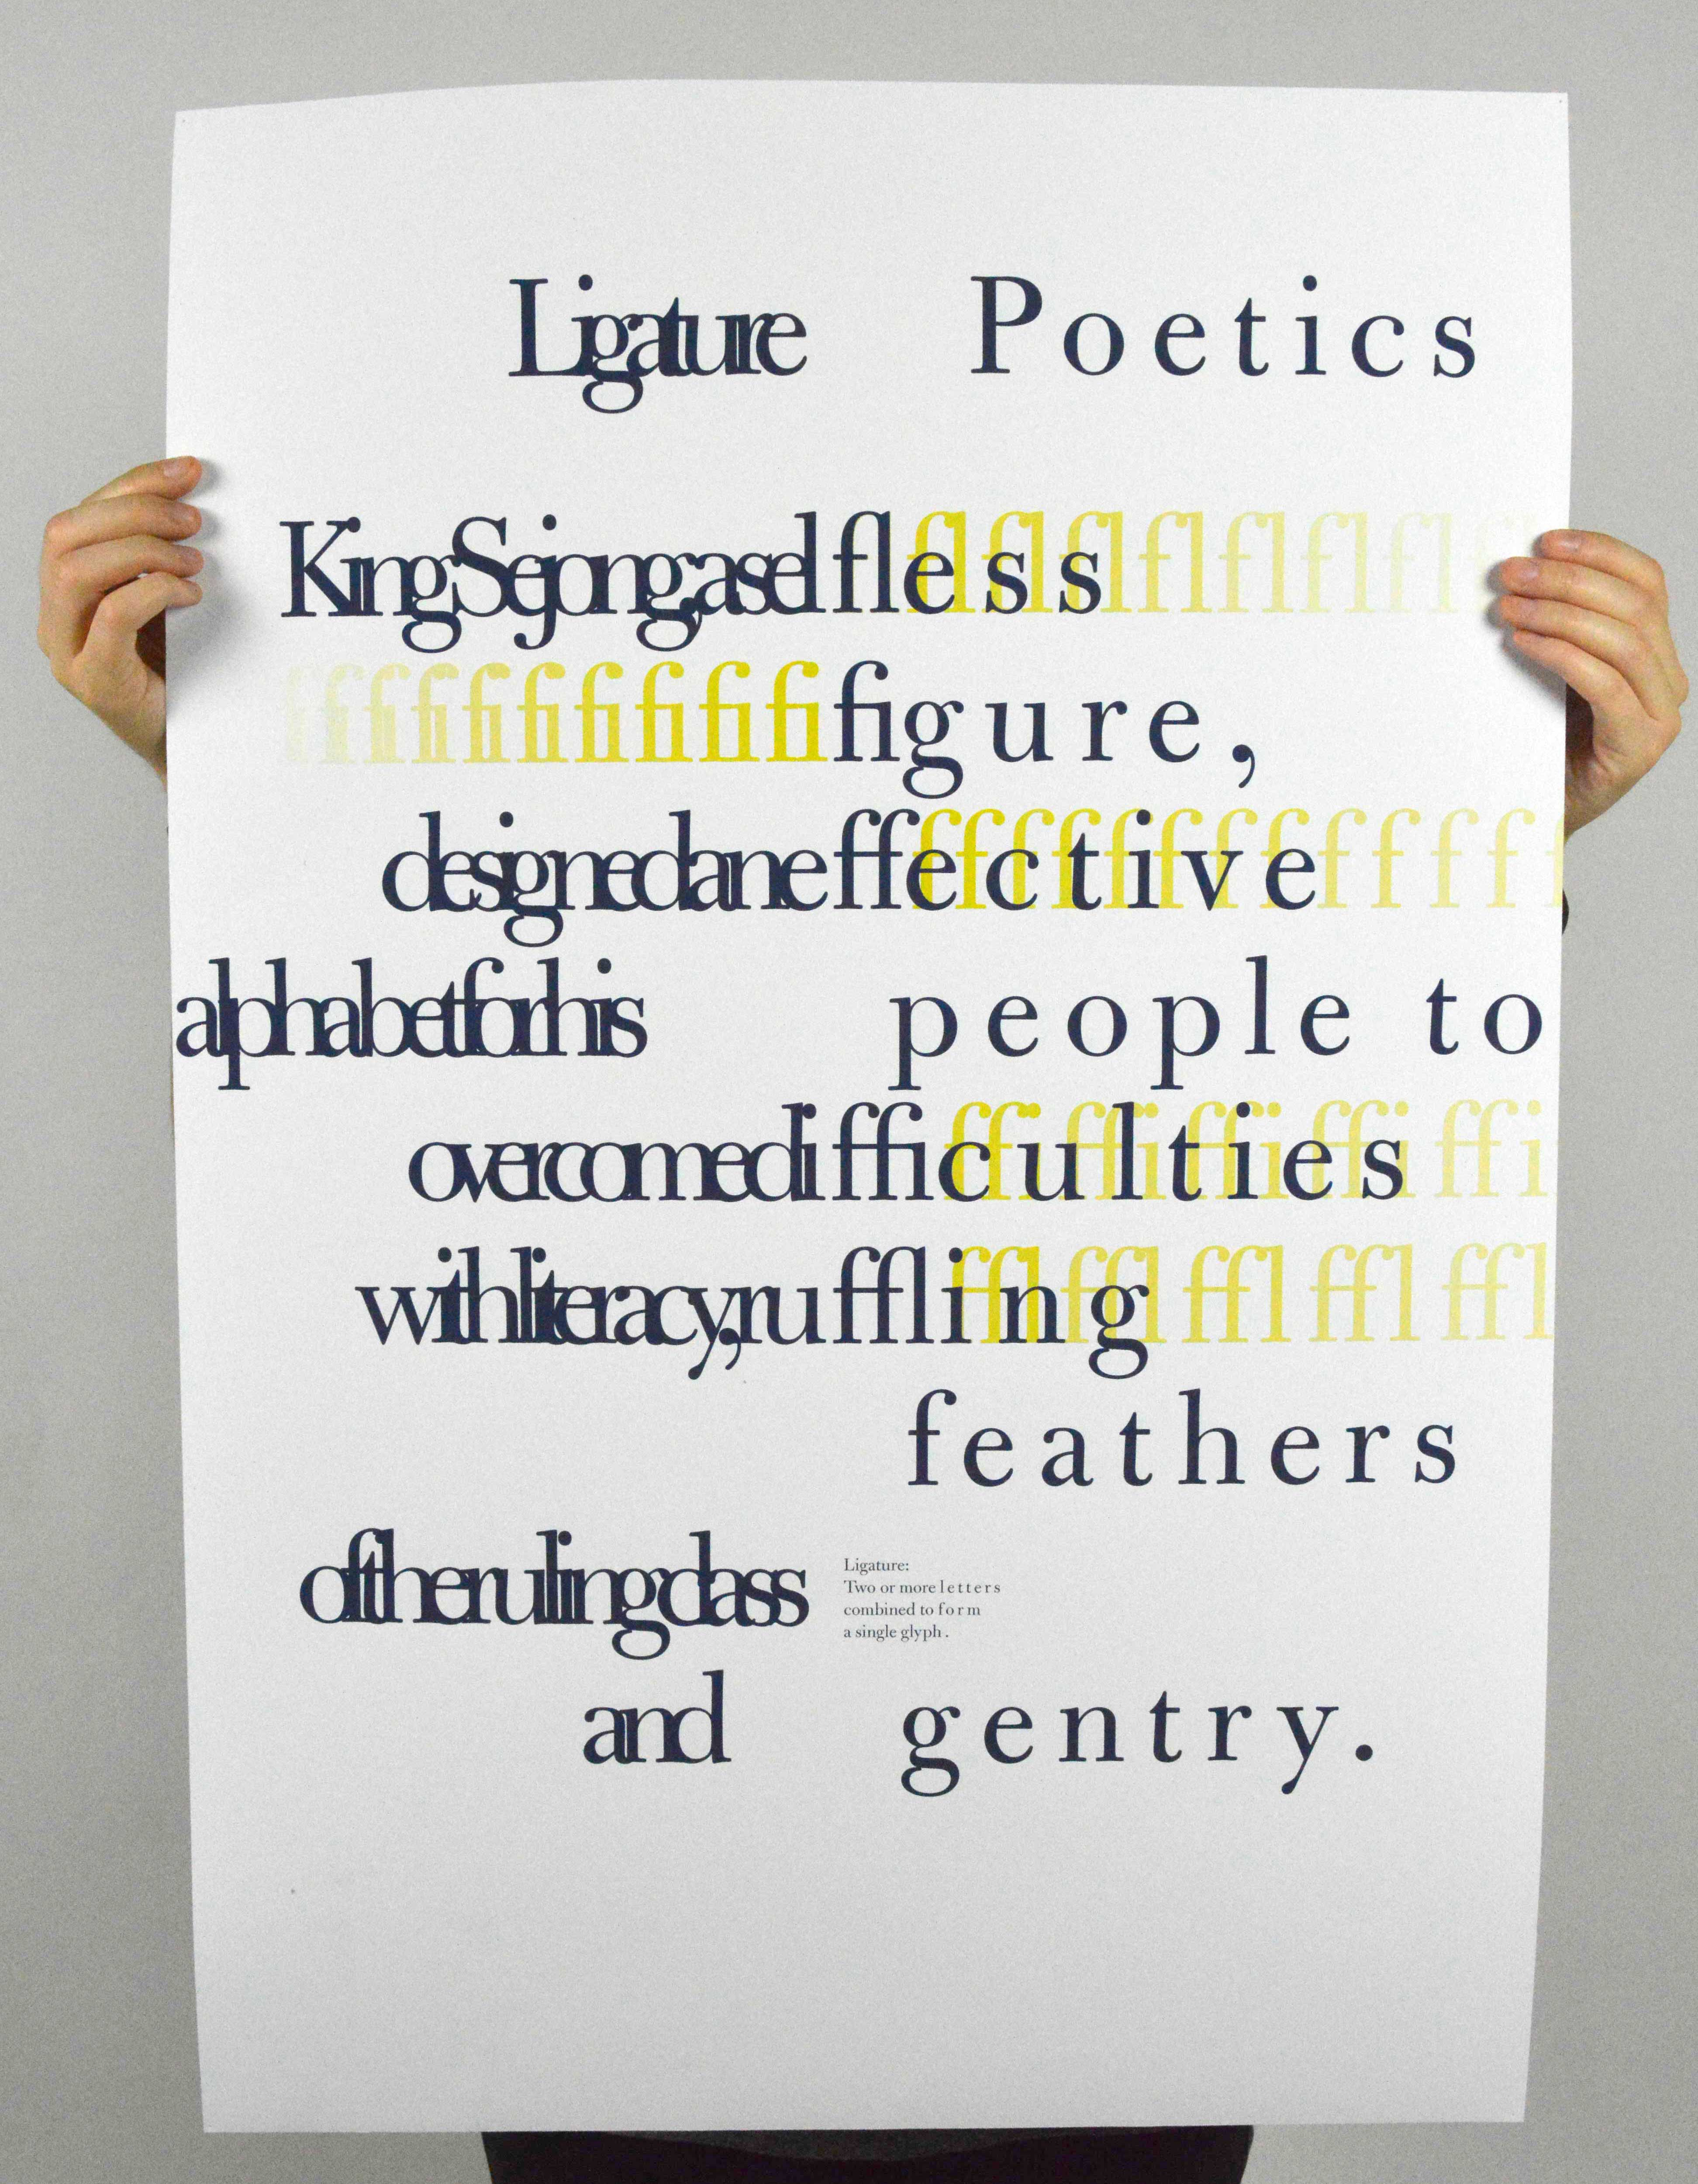 LigaturePoetics_TypeB